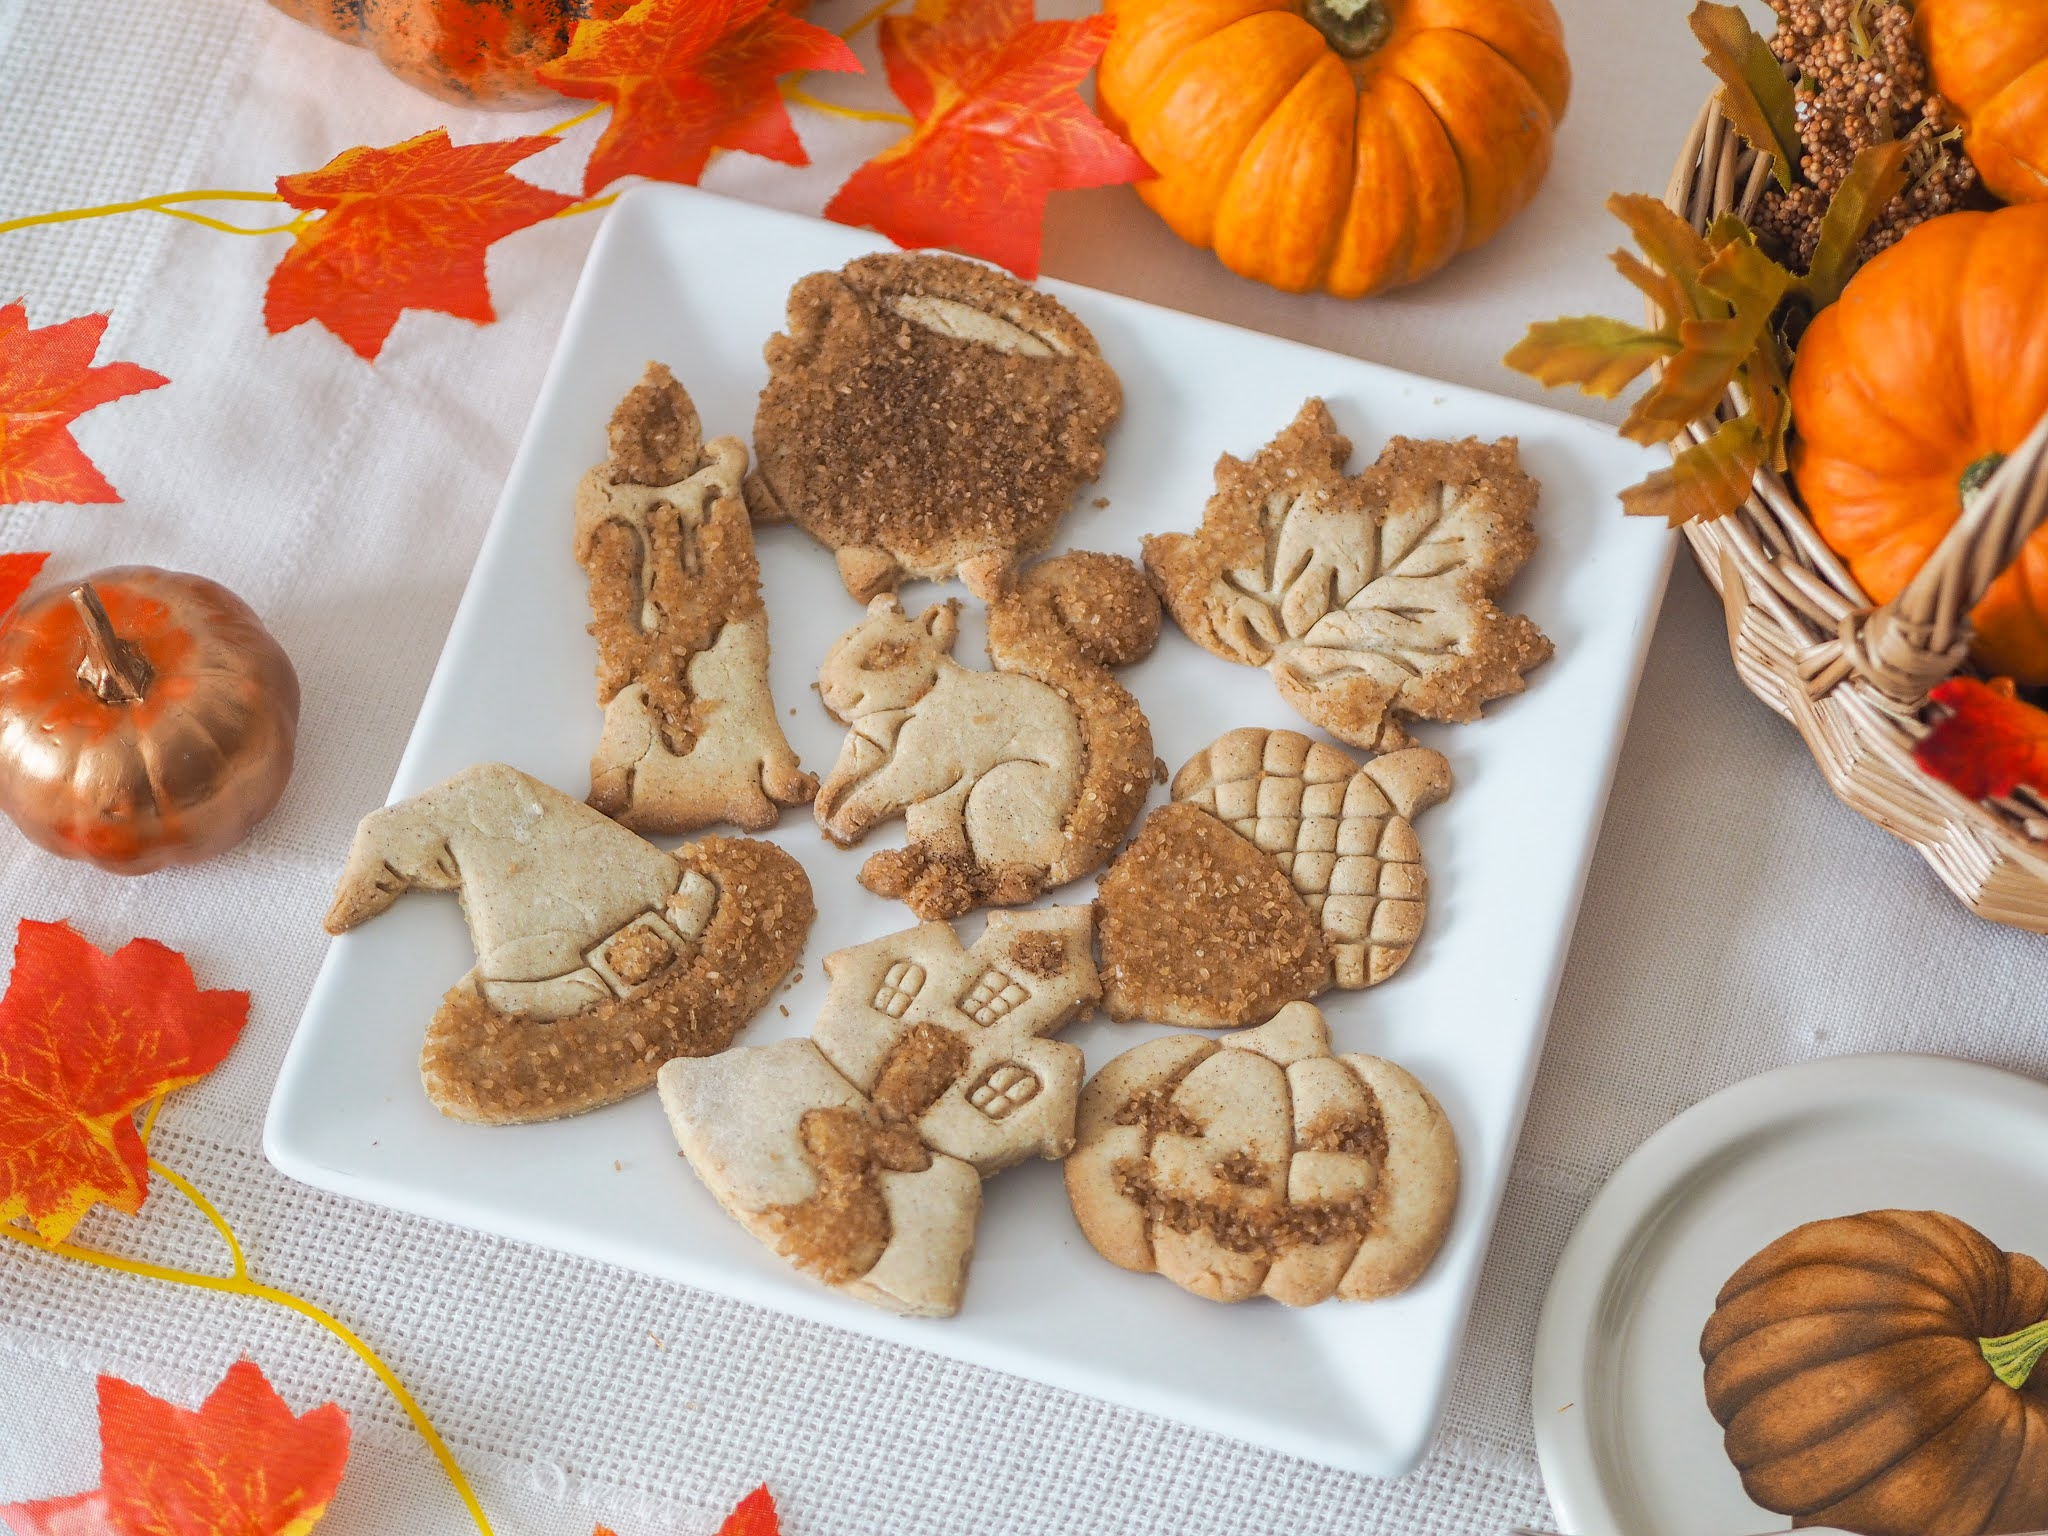 Pumpkin Spiced Autumn & Halloween Cookie Recipe, Katie Kirk Loves, Autumn Recipe, Fall Recipe, UK Food Blogger, Sugar Cookies, Pumpkin Spice Cookies, Pumpkin Spice Sugar Cookies, Halloween Recipe, Autumn Baking, Fall Baking, Biscuit Recipe, UK Recipe